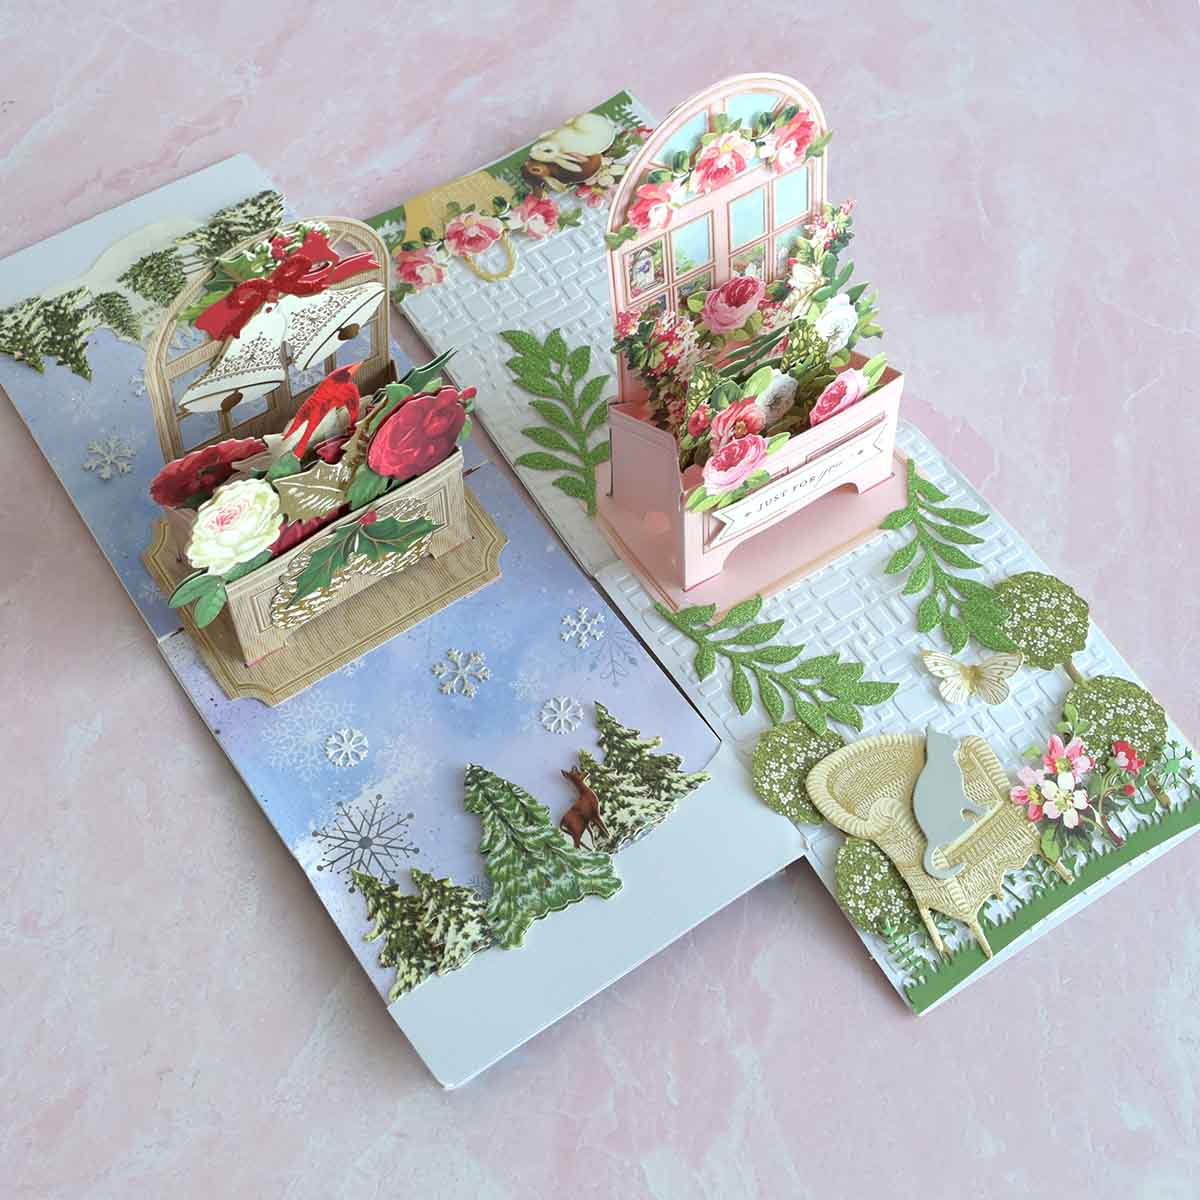 Two window box cards one is blue and Christmas themed and the other is a pink floral garden with foliage.